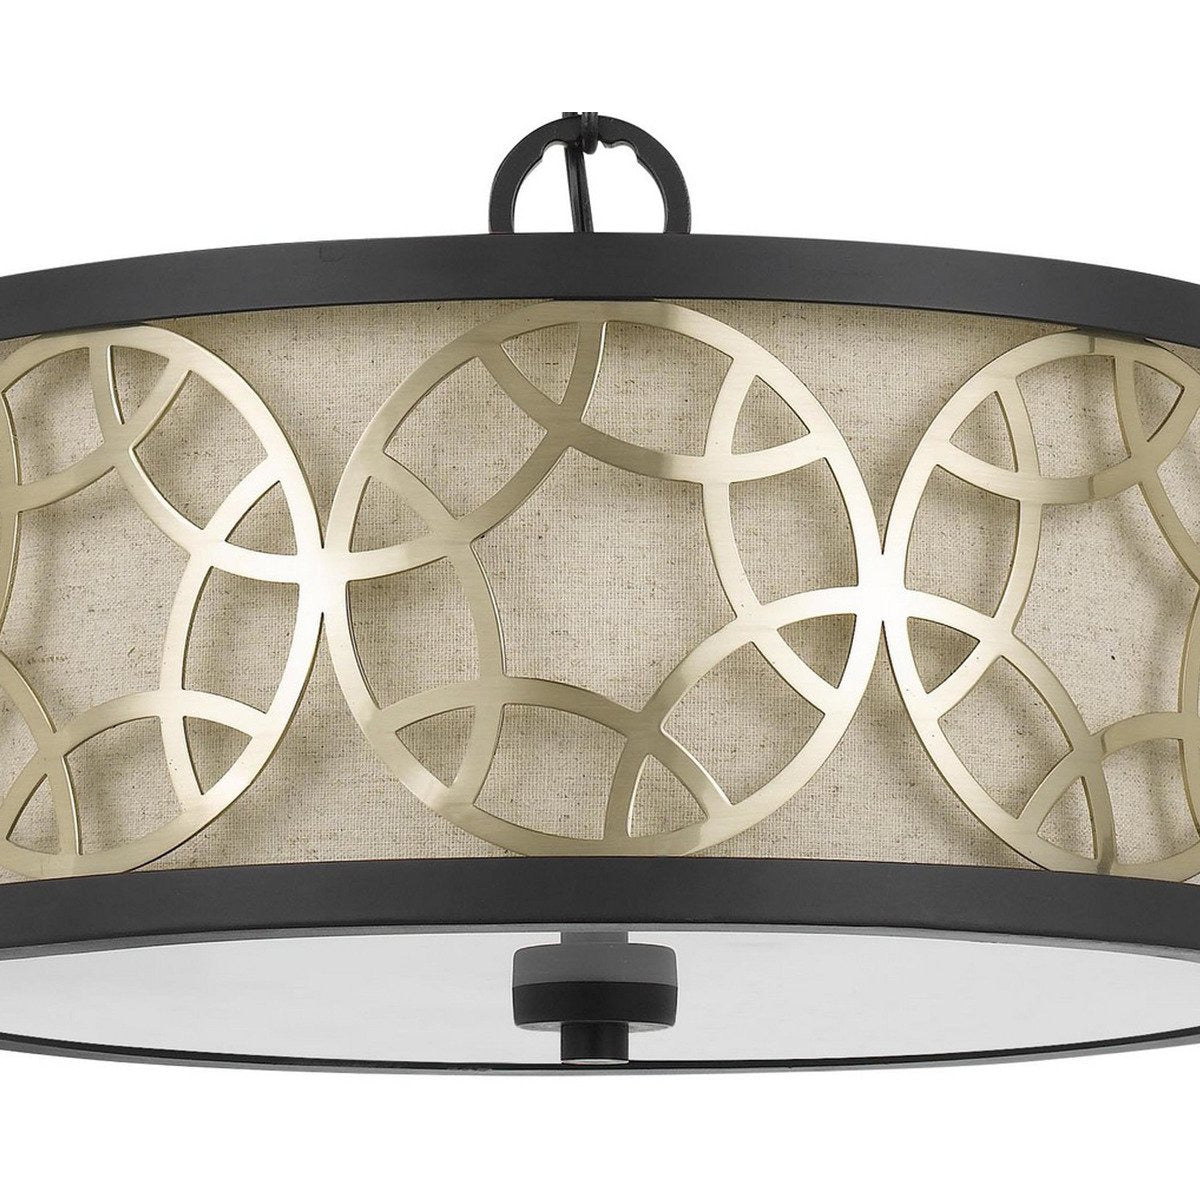 Chandeliers & Pendants - Cylindrical Drum Pendant Chandelier With Lattice Design, Black And Brass